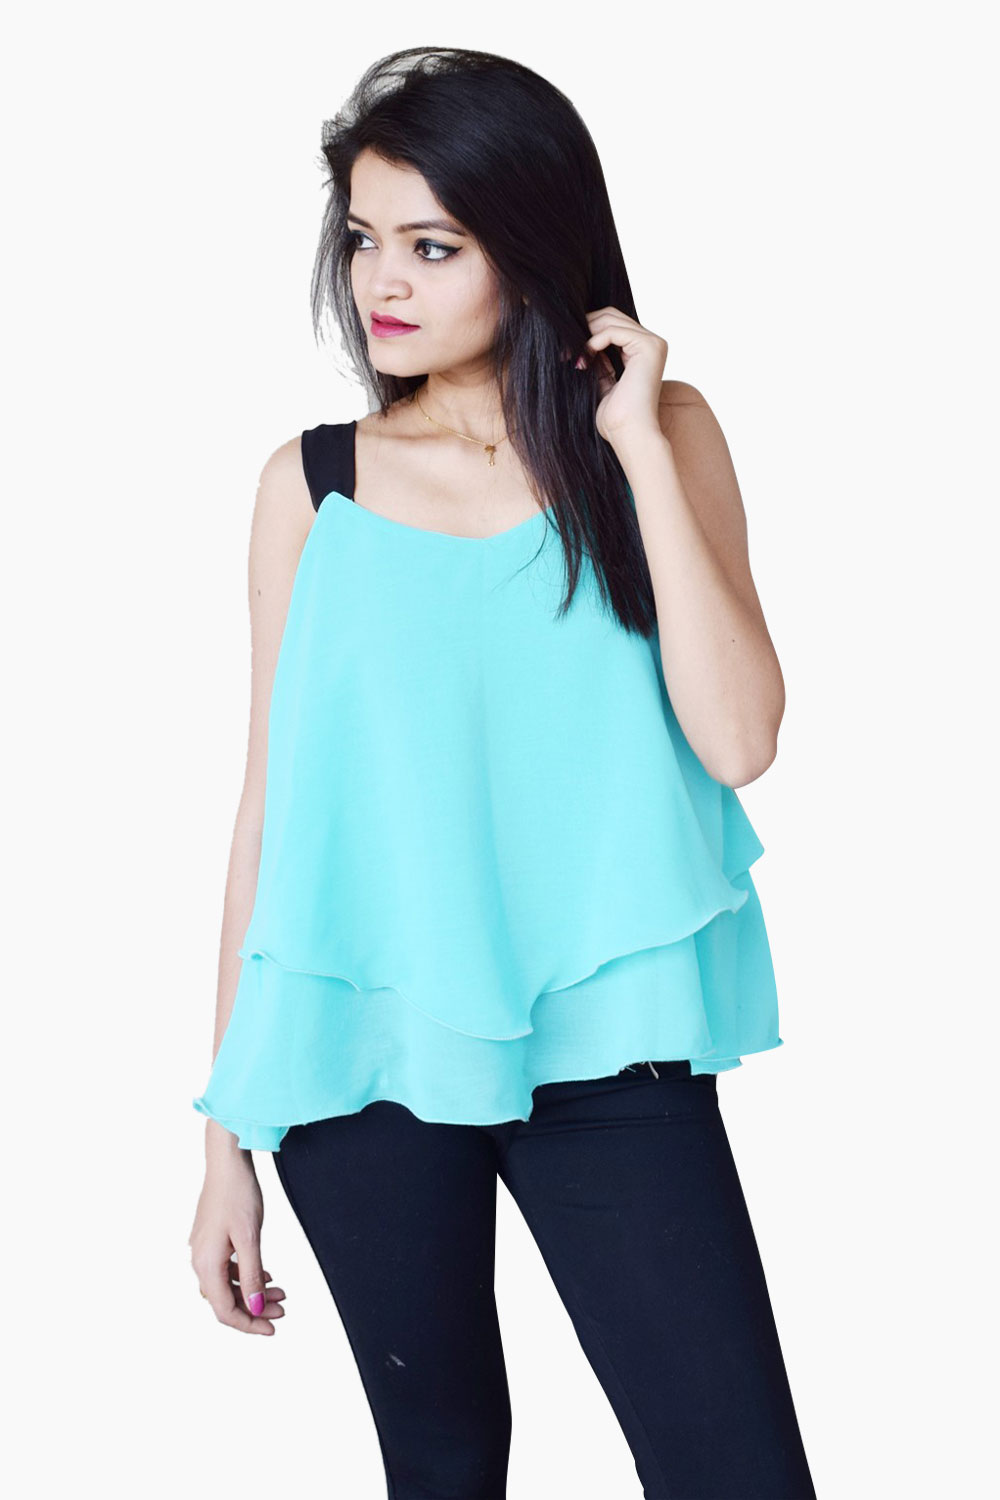 Skyblue Layer It Up Top